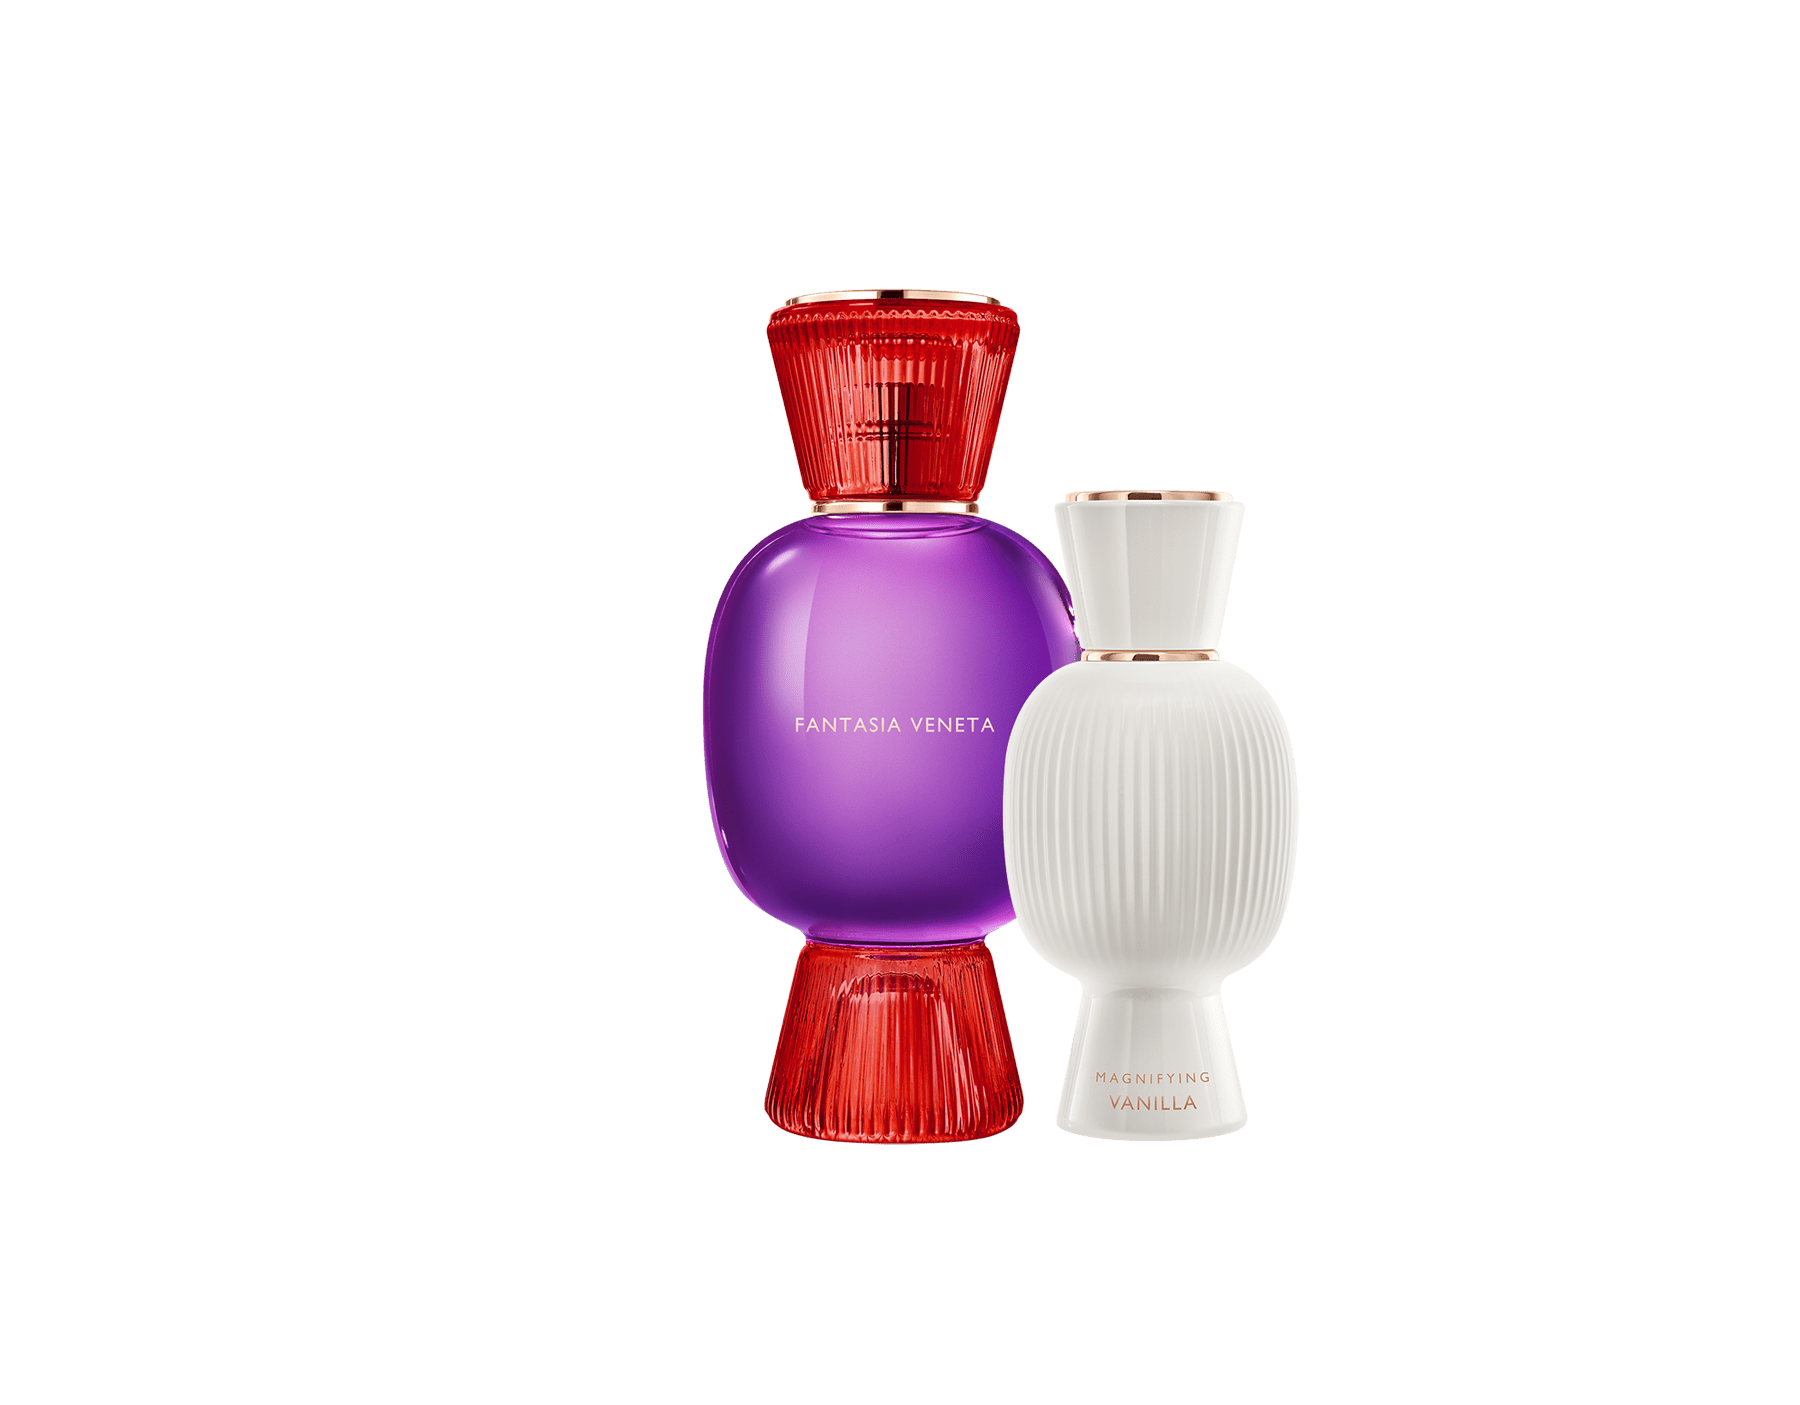 An exclusive perfume set, as bold and unique as you. The festive chypre Fantasia Veneta Allegra Eau de Parfum blends with the addictive aroma of the Magnifying Vanilla Essence, creating an irresistible personalised women's perfume. Perfume-Set-Fantasia-Veneta-Eau-de-Parfum-and-Vanilla-Magnifying image 1